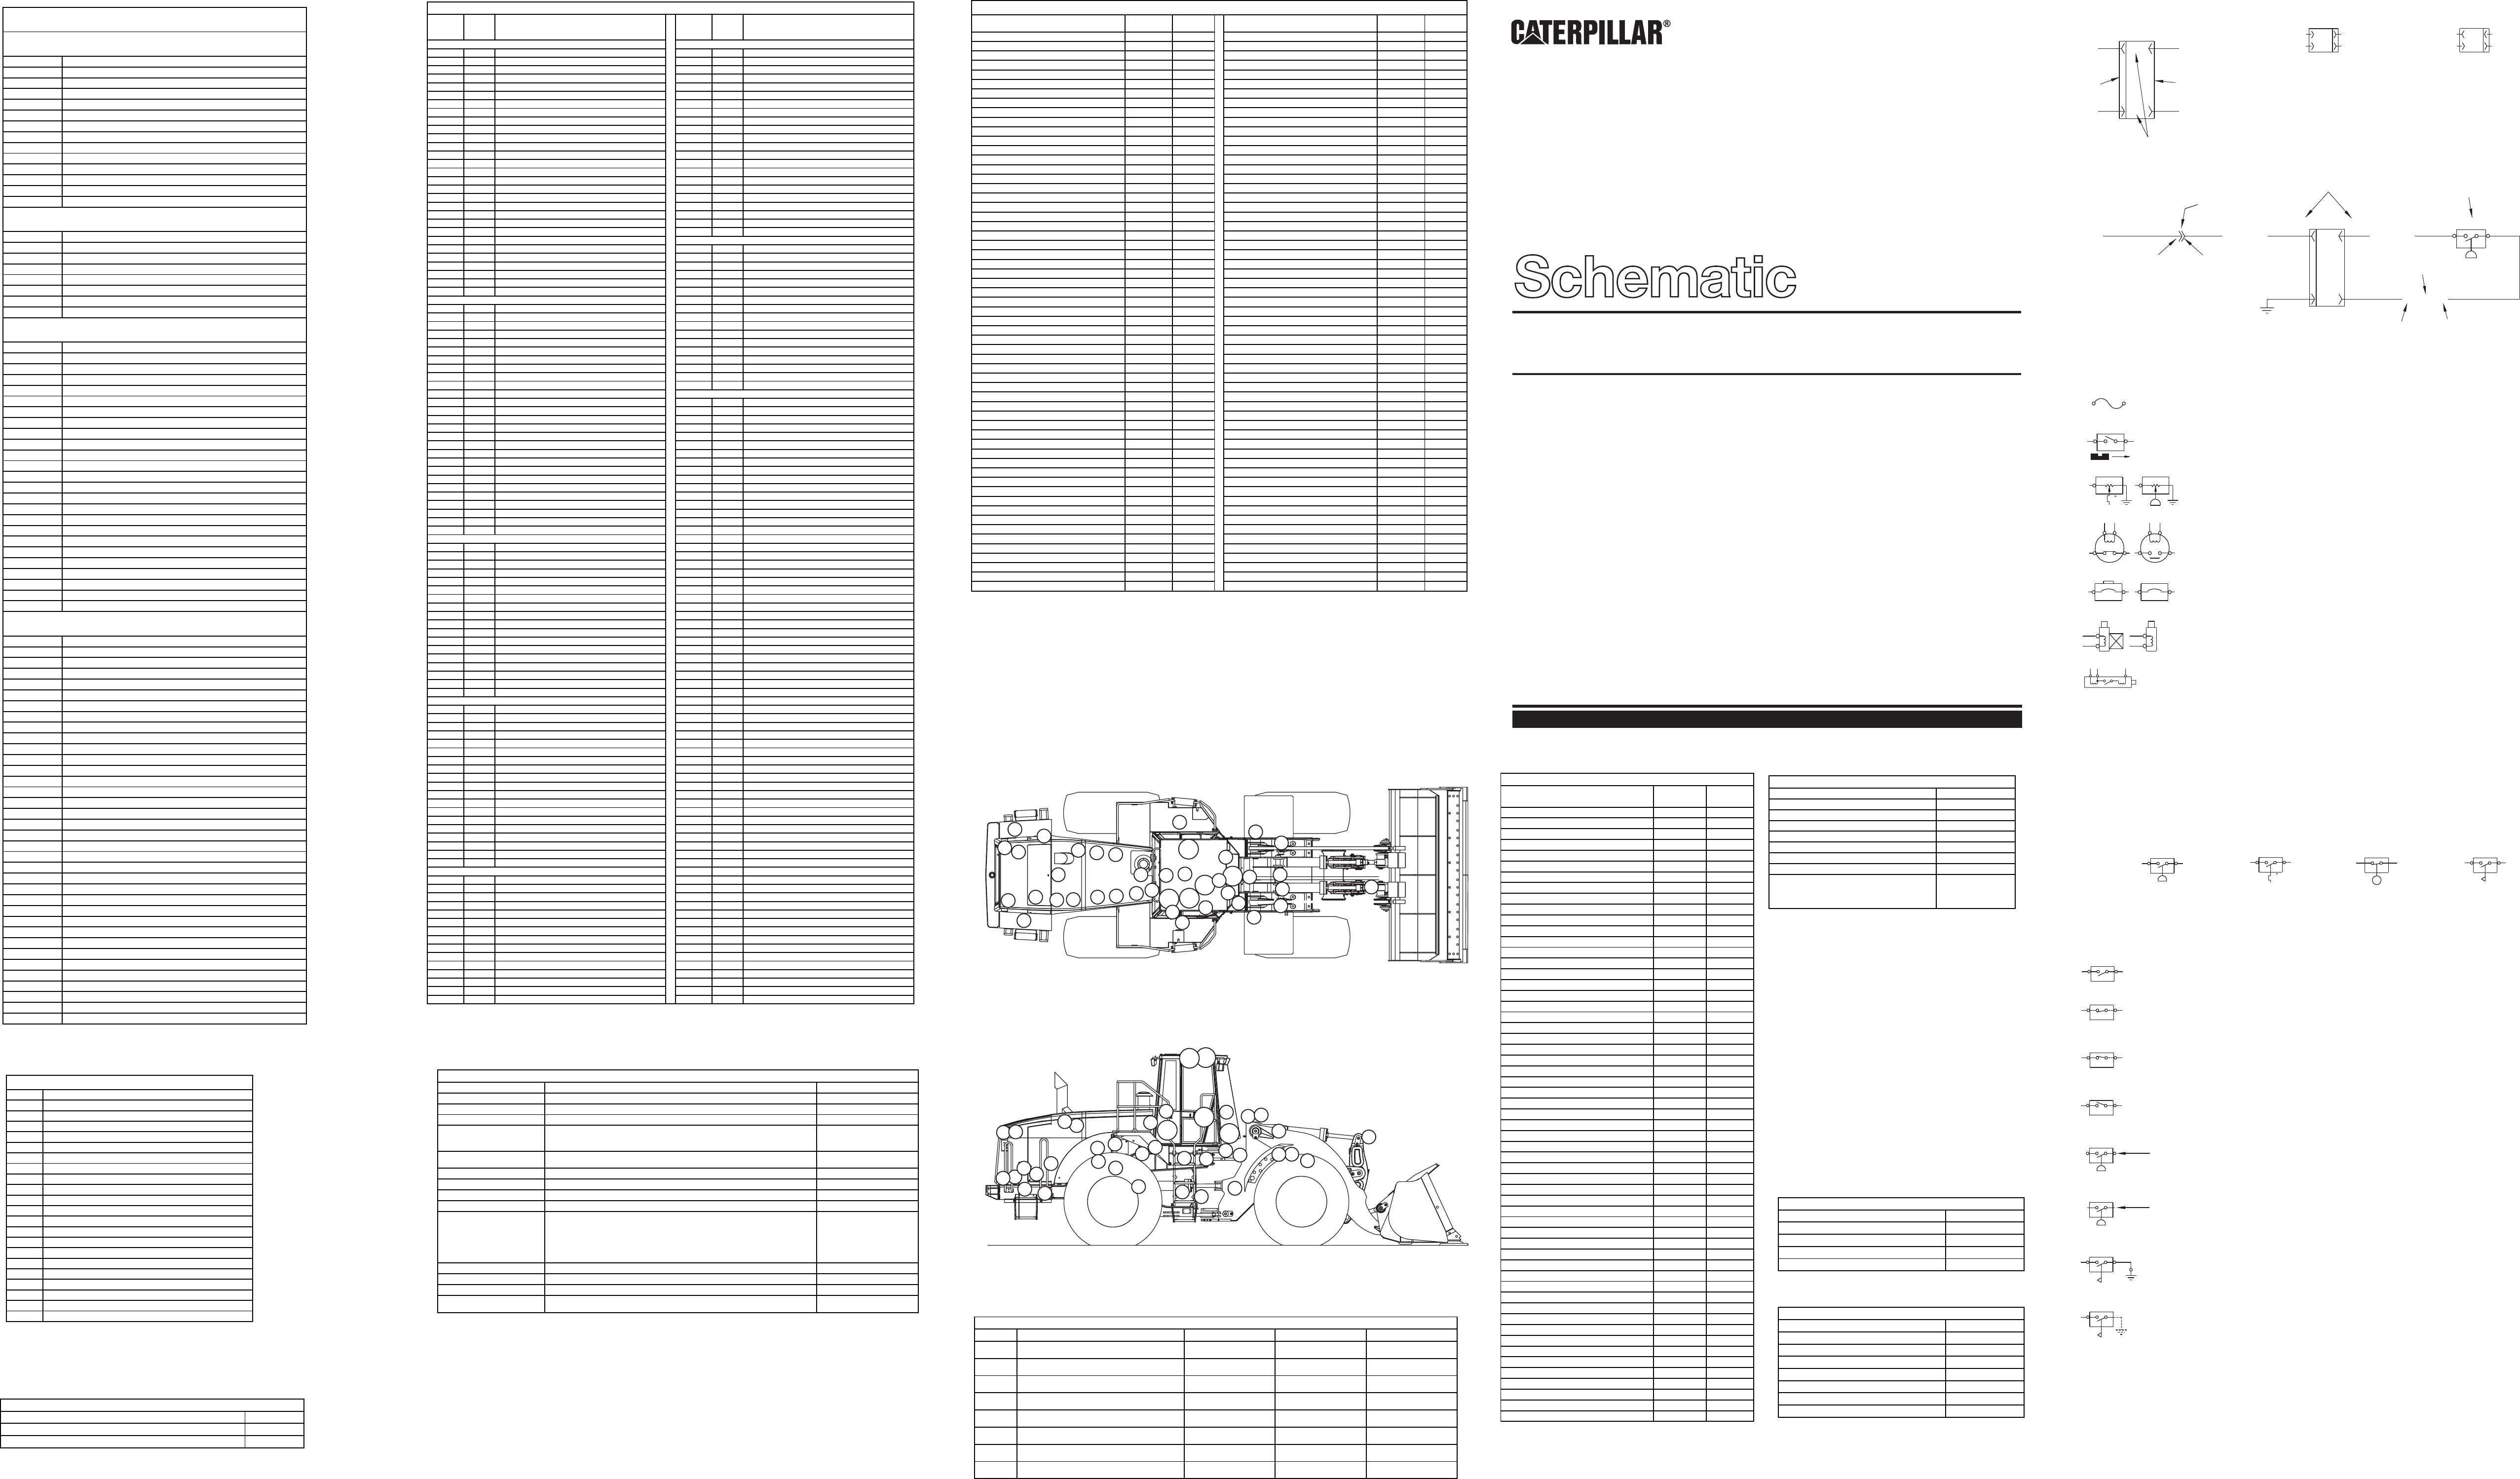 980G WHEEL LOADER ELECTRICAL SYSTEM SCHEMATIC | CAT Machines ... on